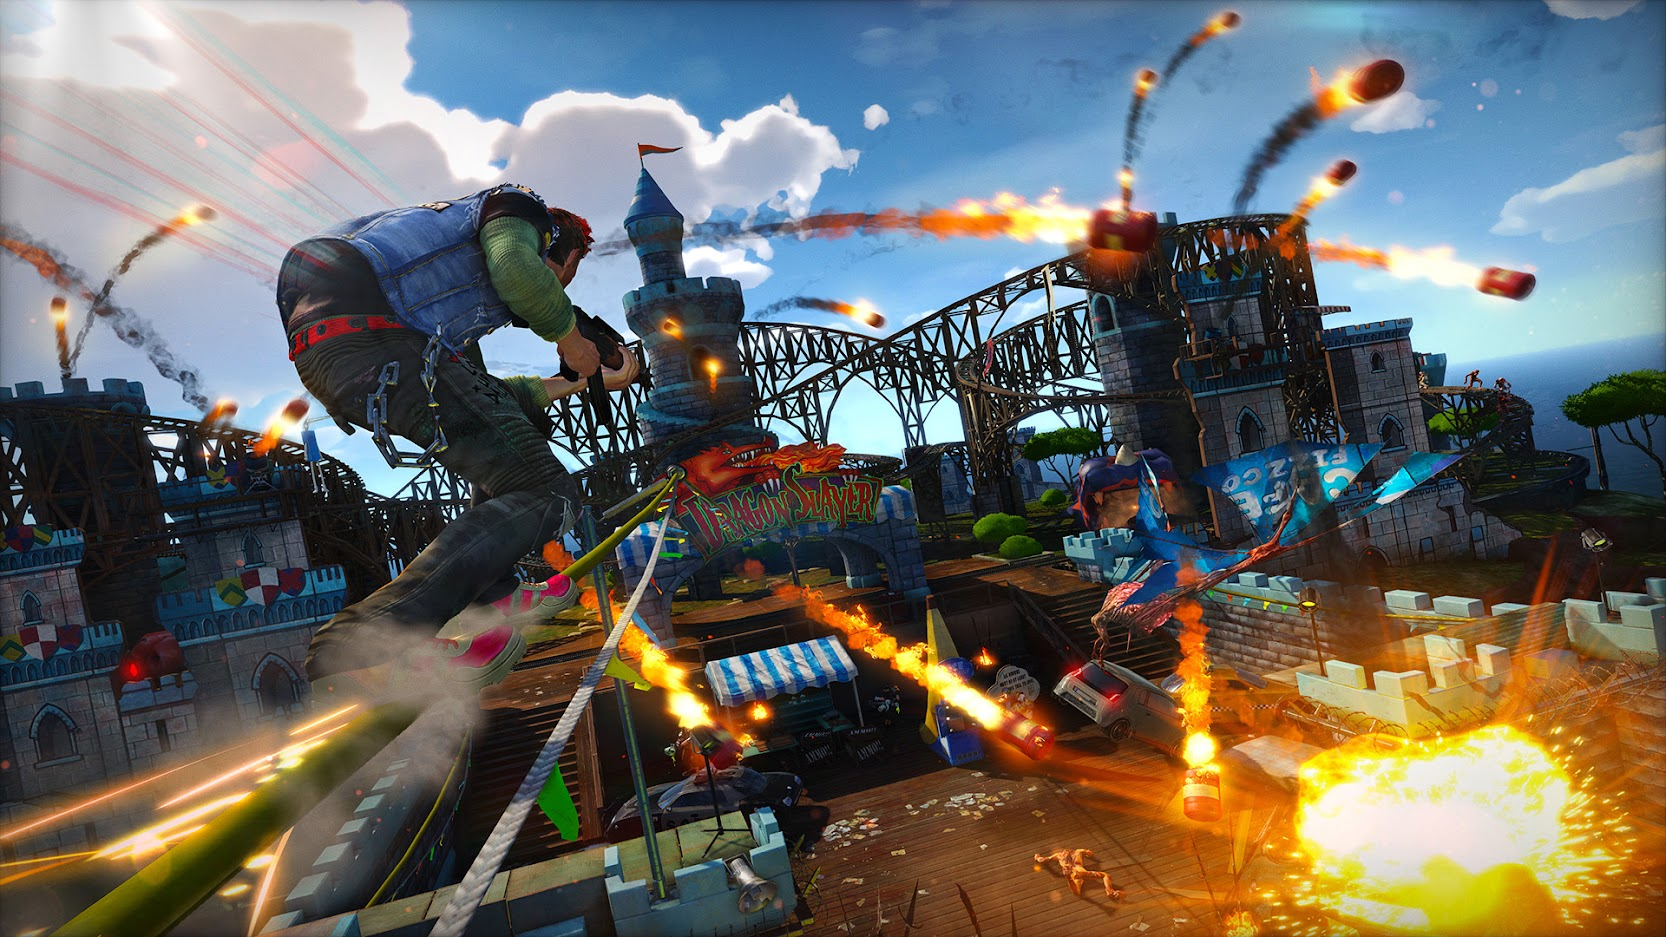 Could Sunset Overdrive Be Making A Comeback